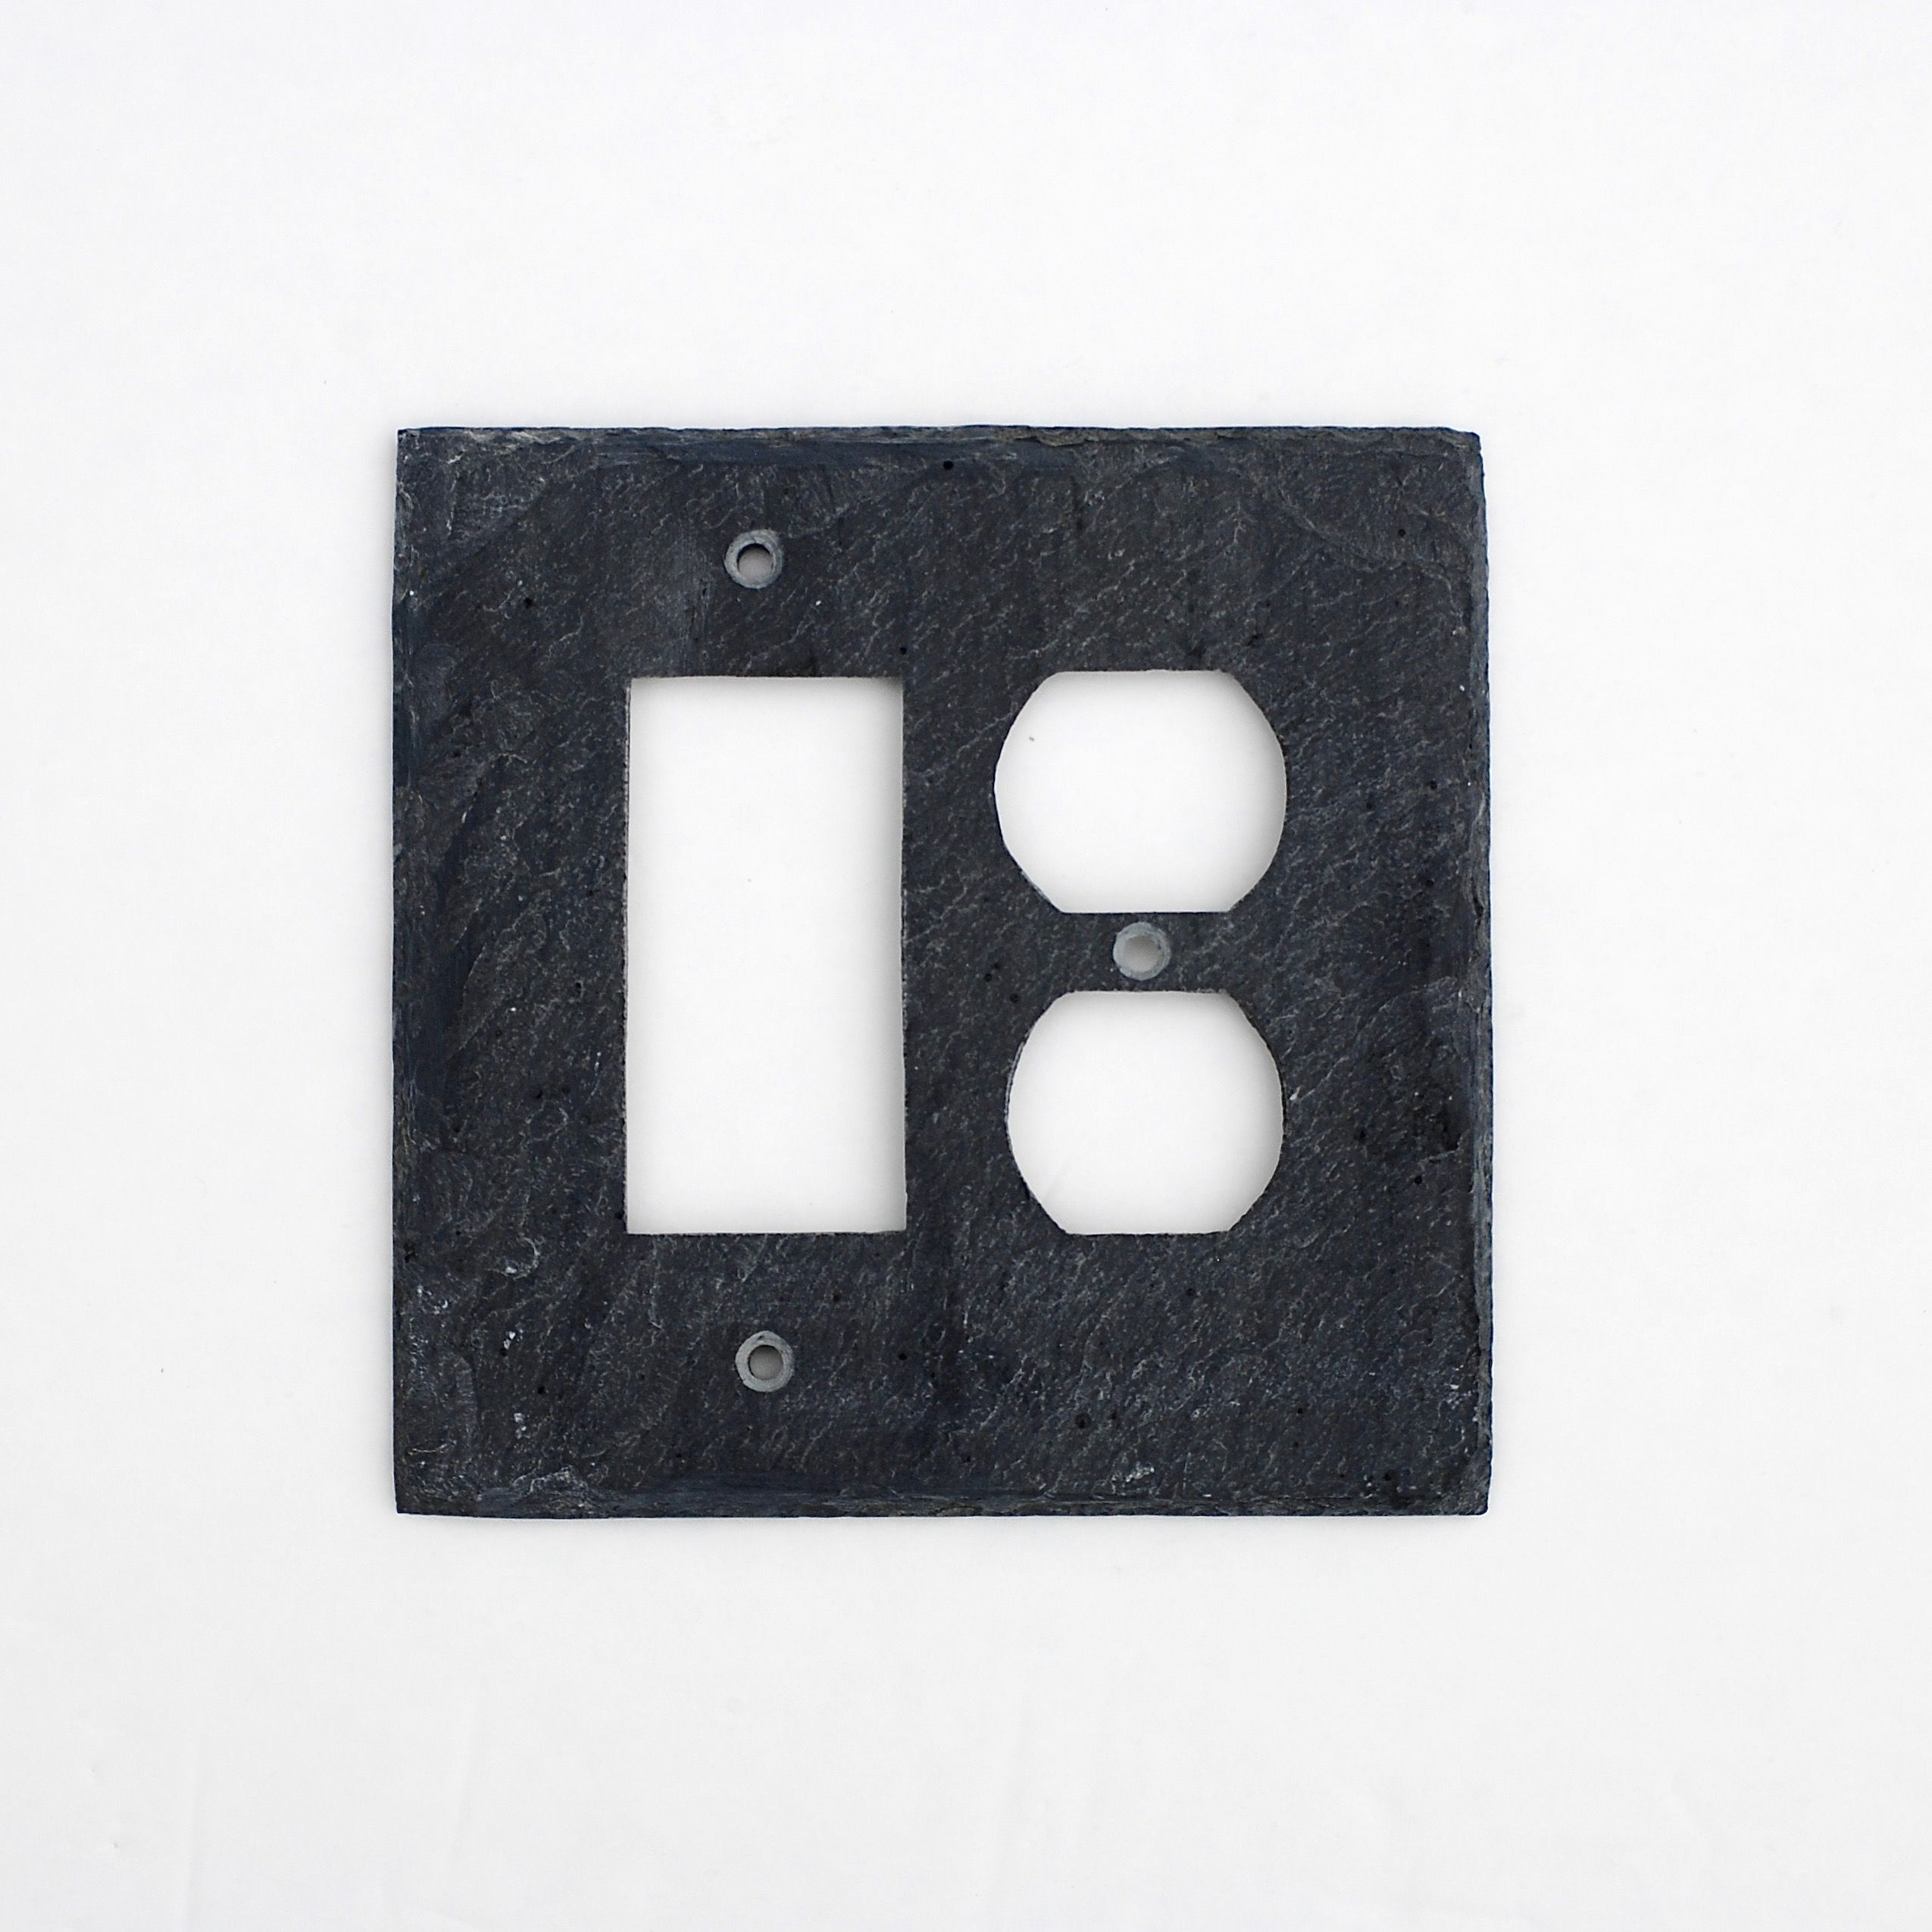 White Decorative Light Switch Covers Decorative Light Switch Cover Stone Light Switch Cover